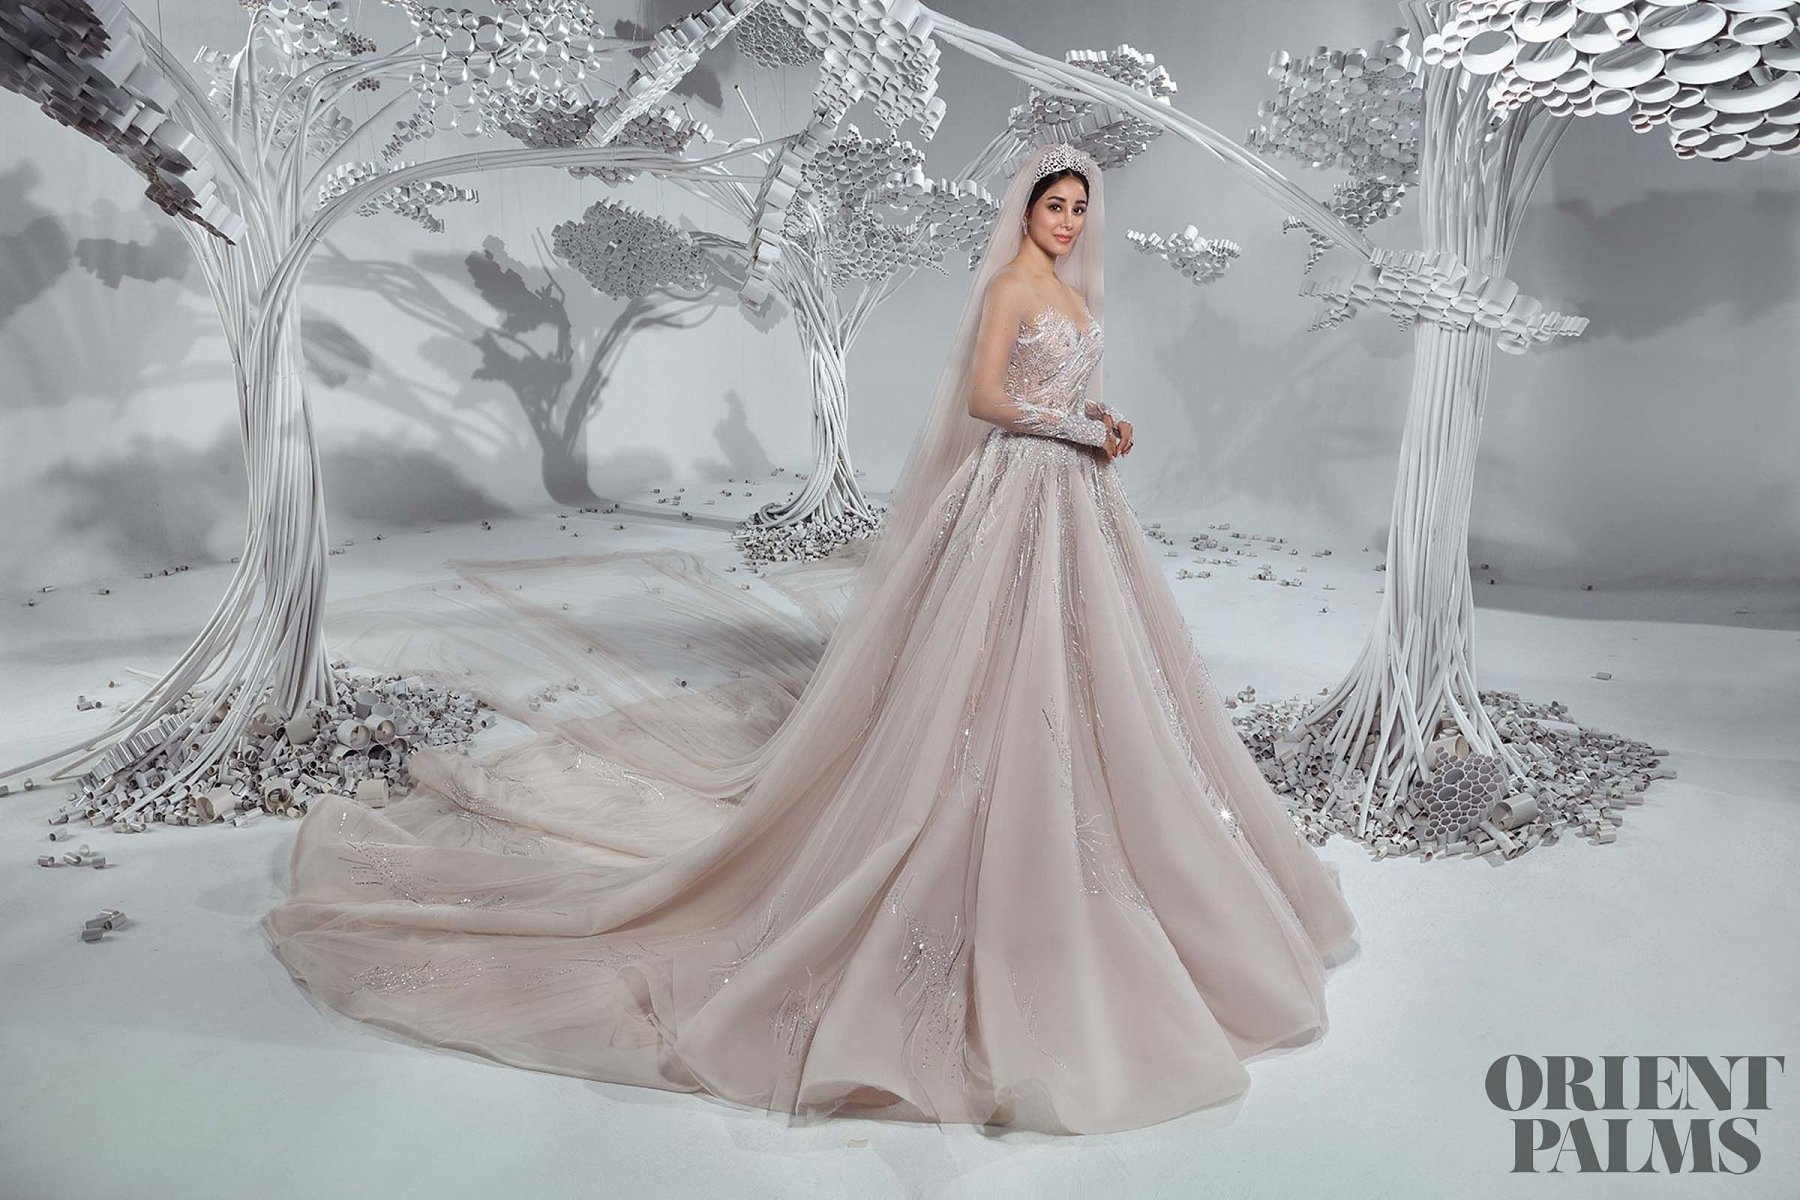 Charbel Karam 2020 collection - Couture - 2